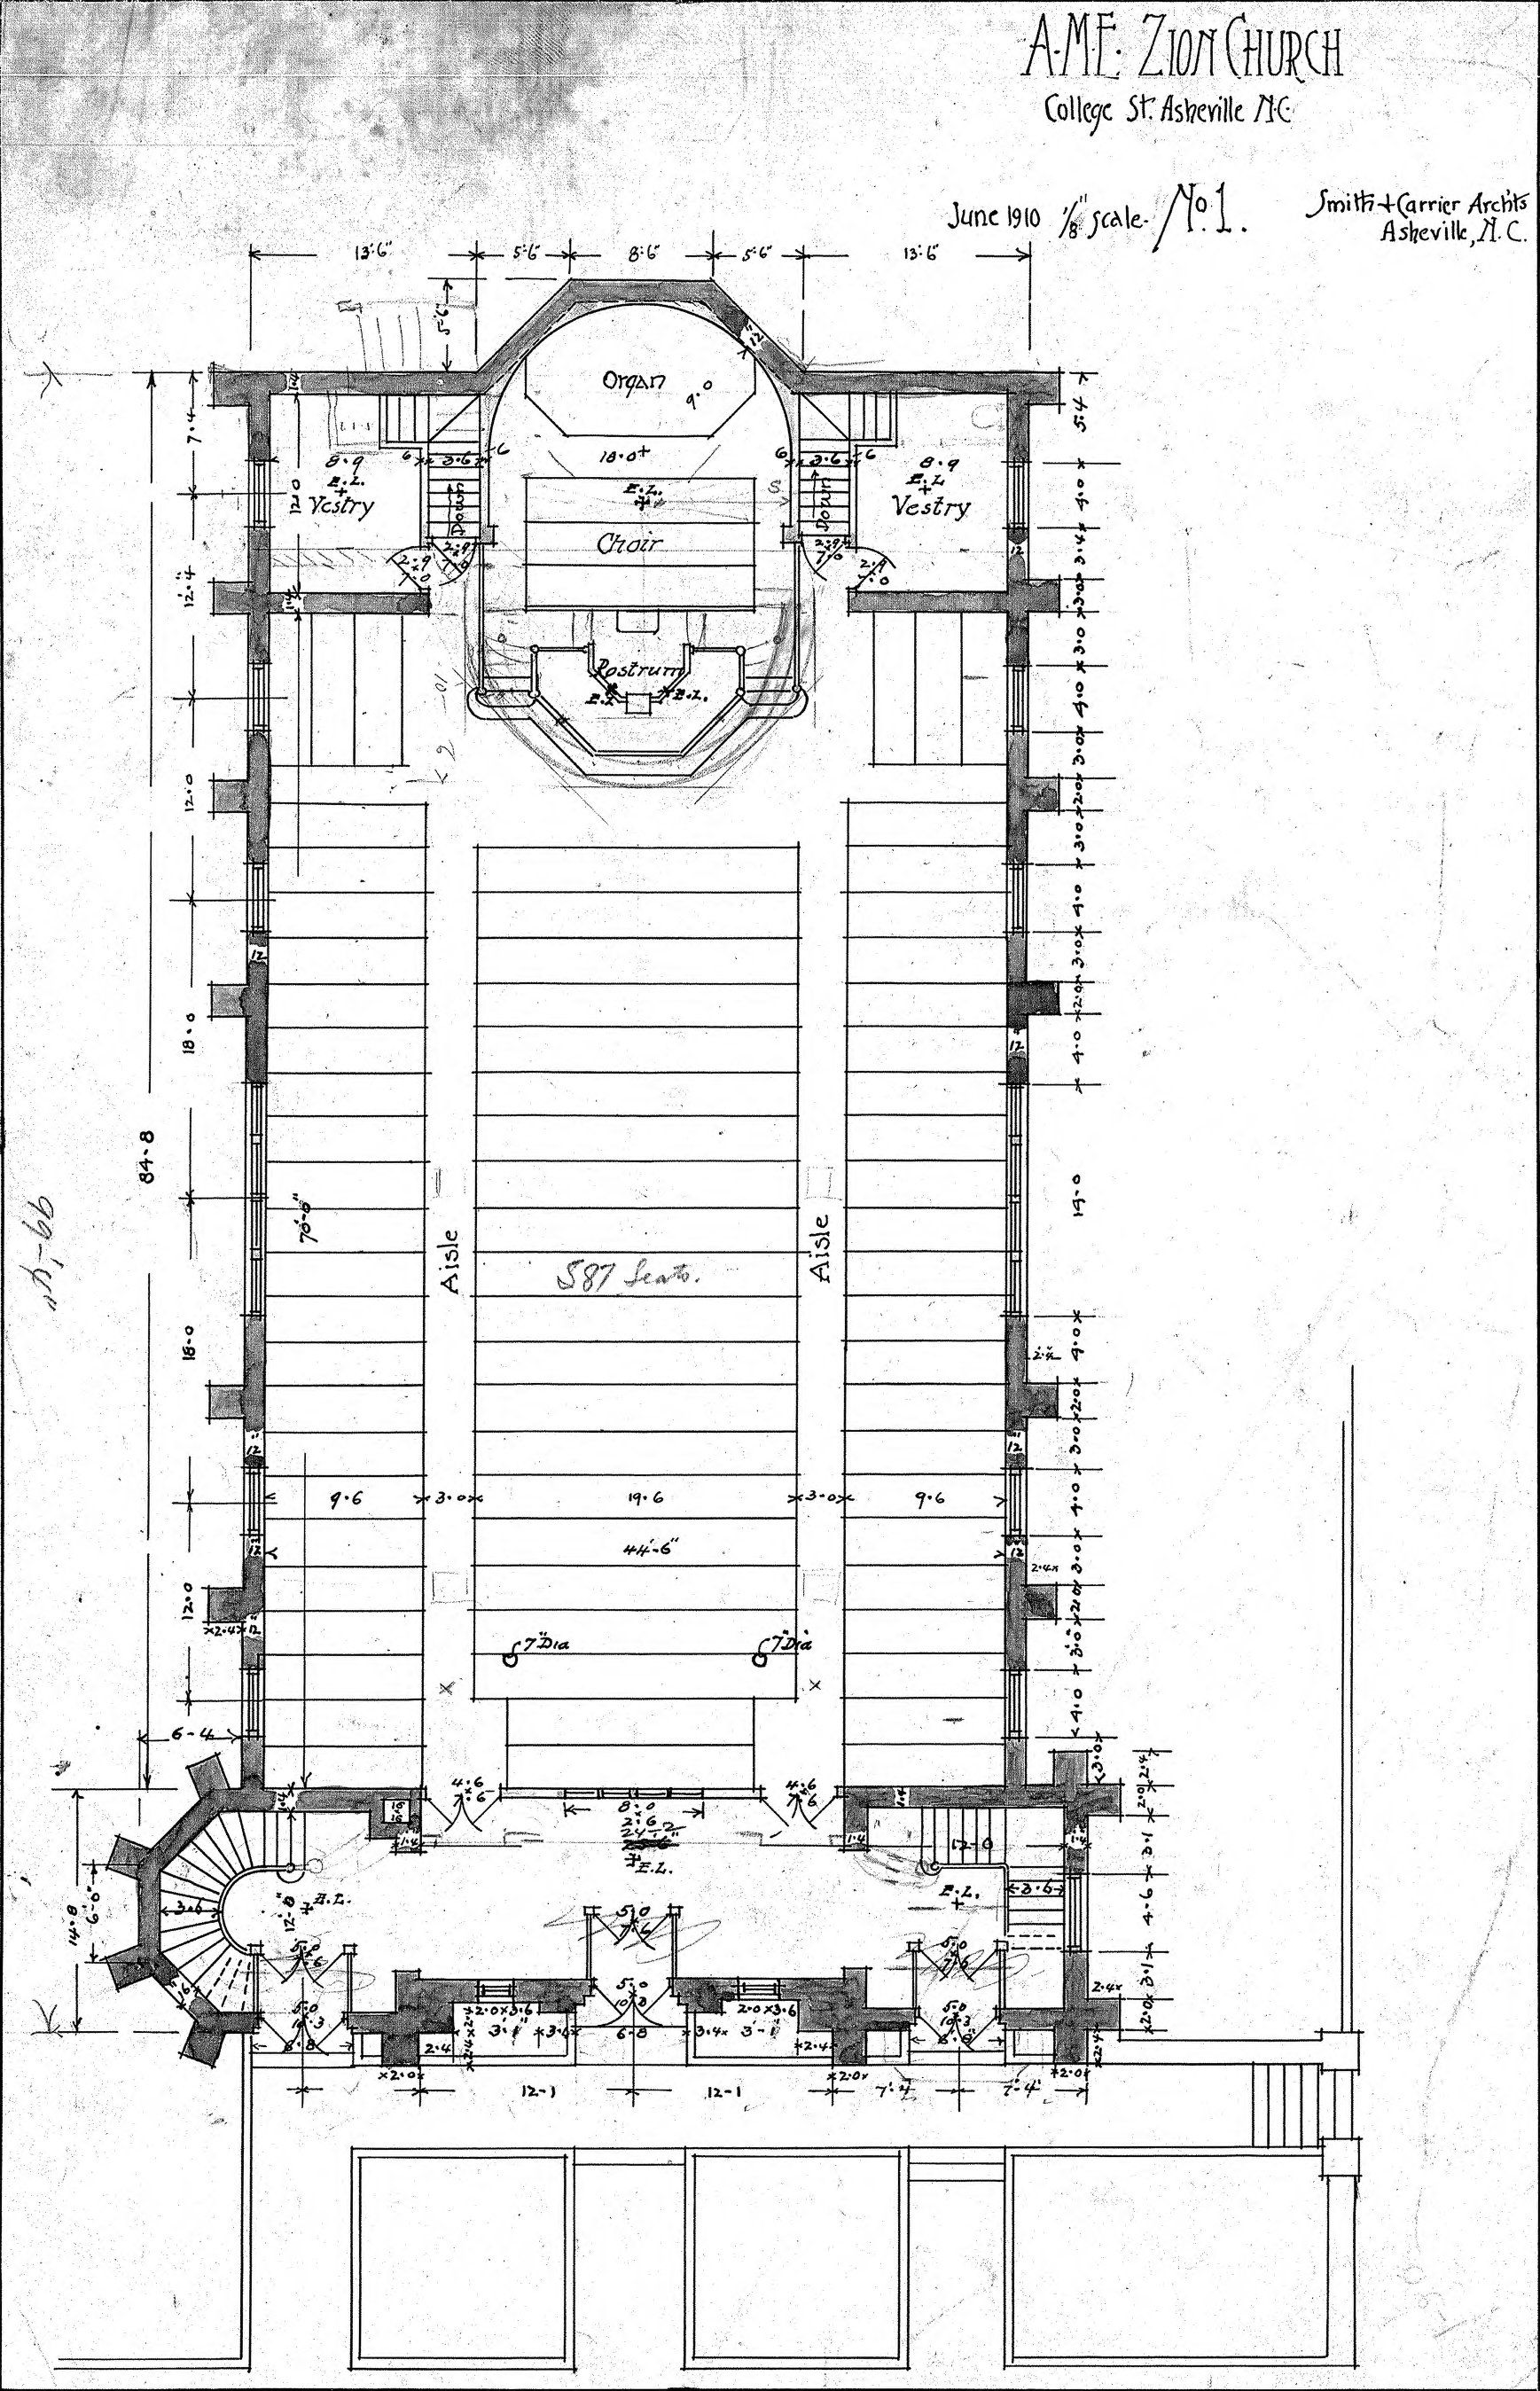 church floor plans museums architecture pinterest ForFloor Plan Church